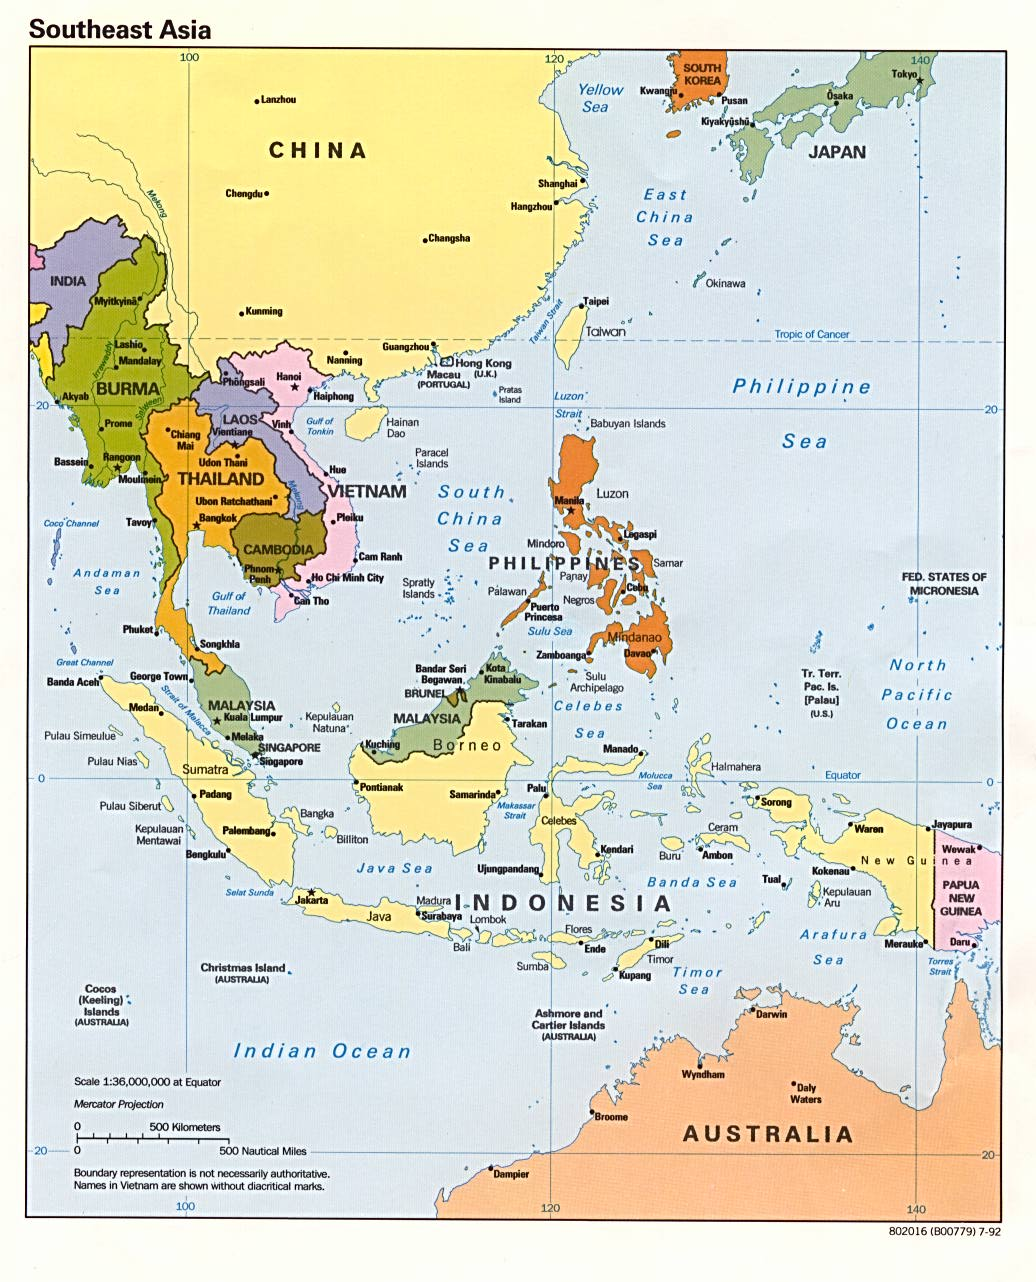 Southeast Asia Political Map   1992.